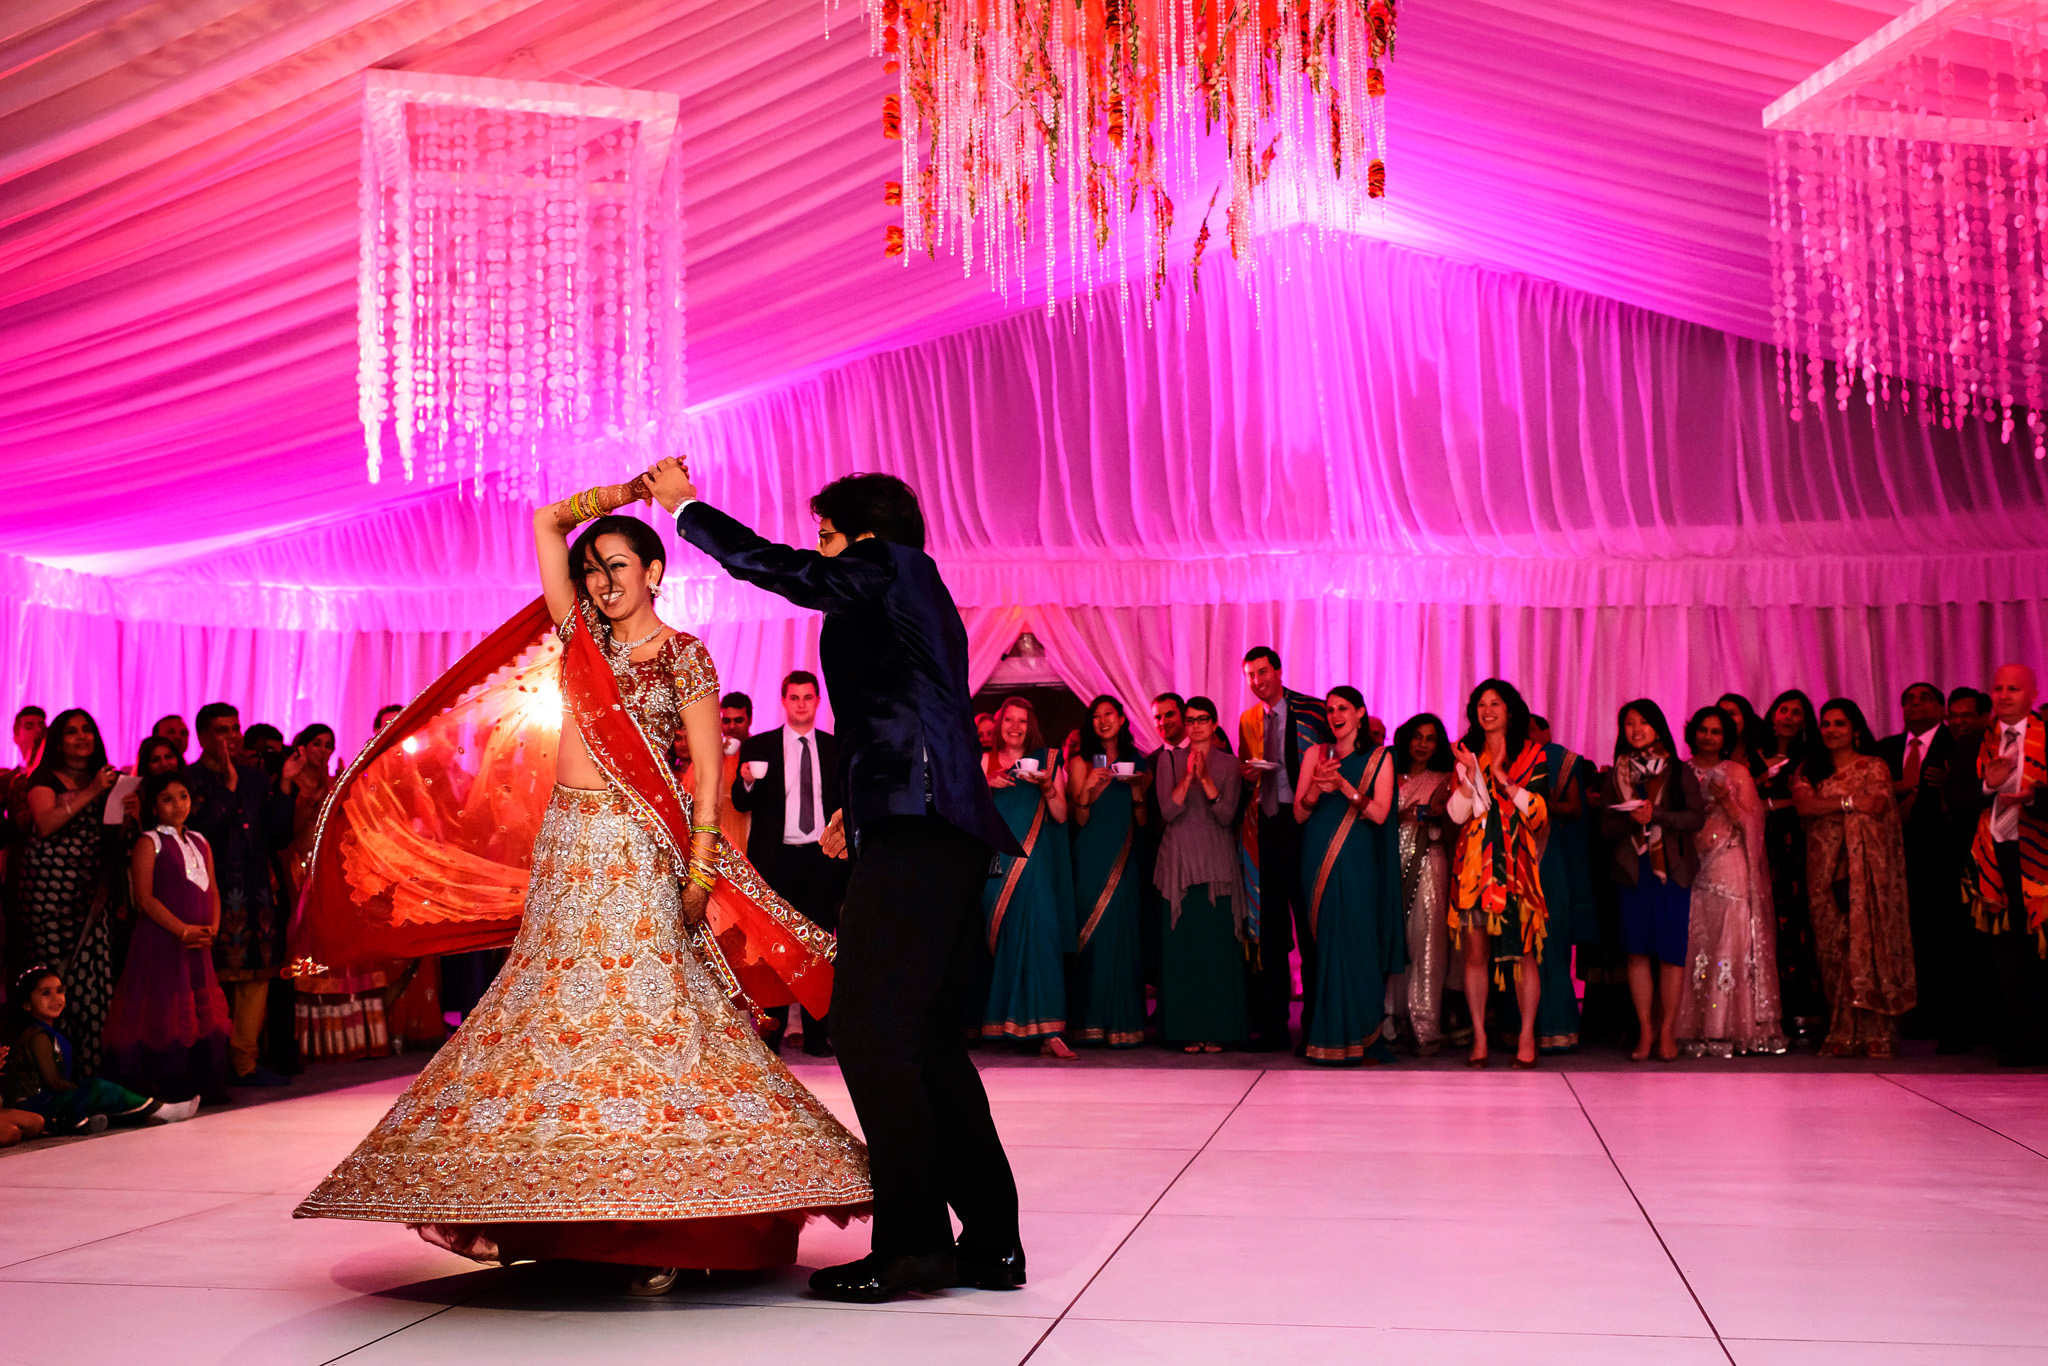 Neha and Arjun's wedding at the St Regis Hotel in San Francisco, California.